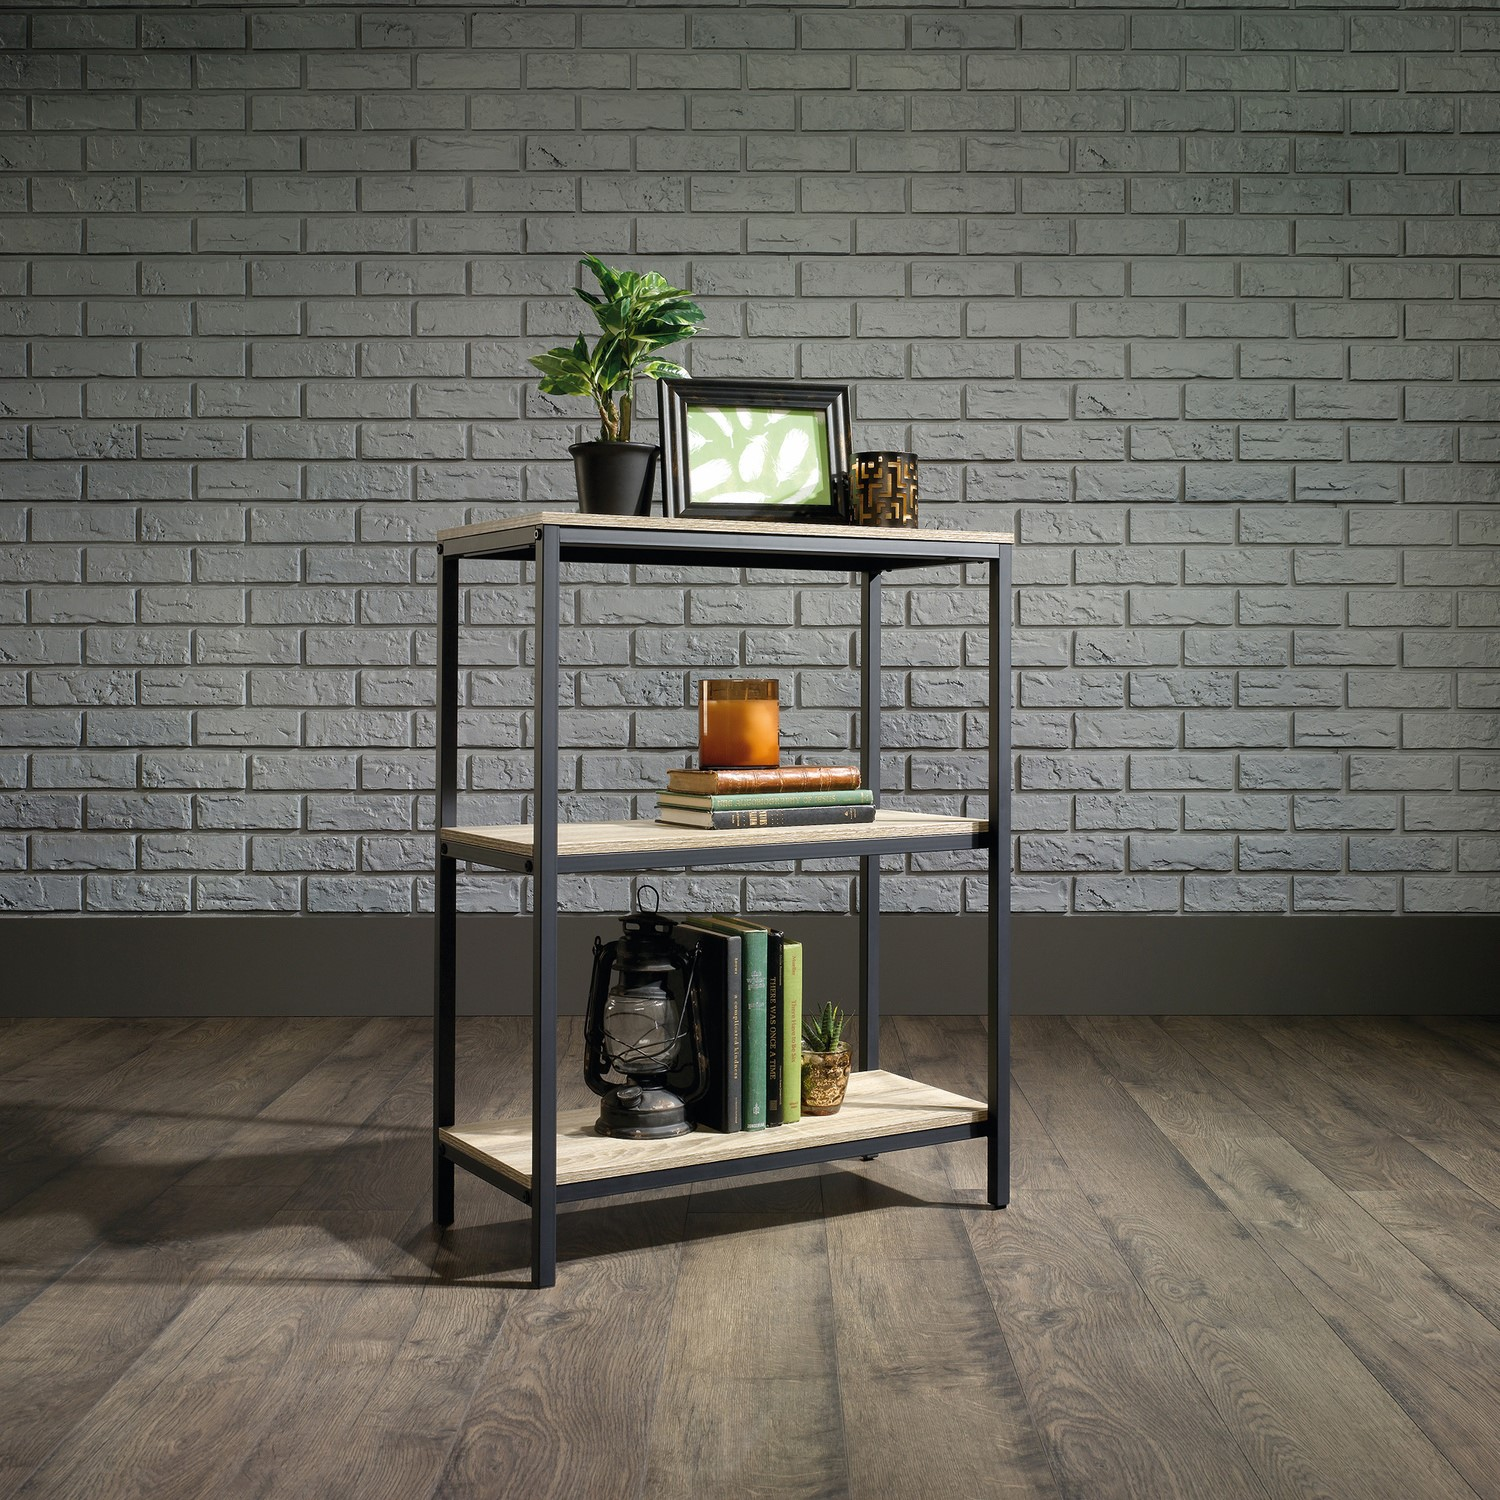 Photo of Industrial style 3 shelf bookcase